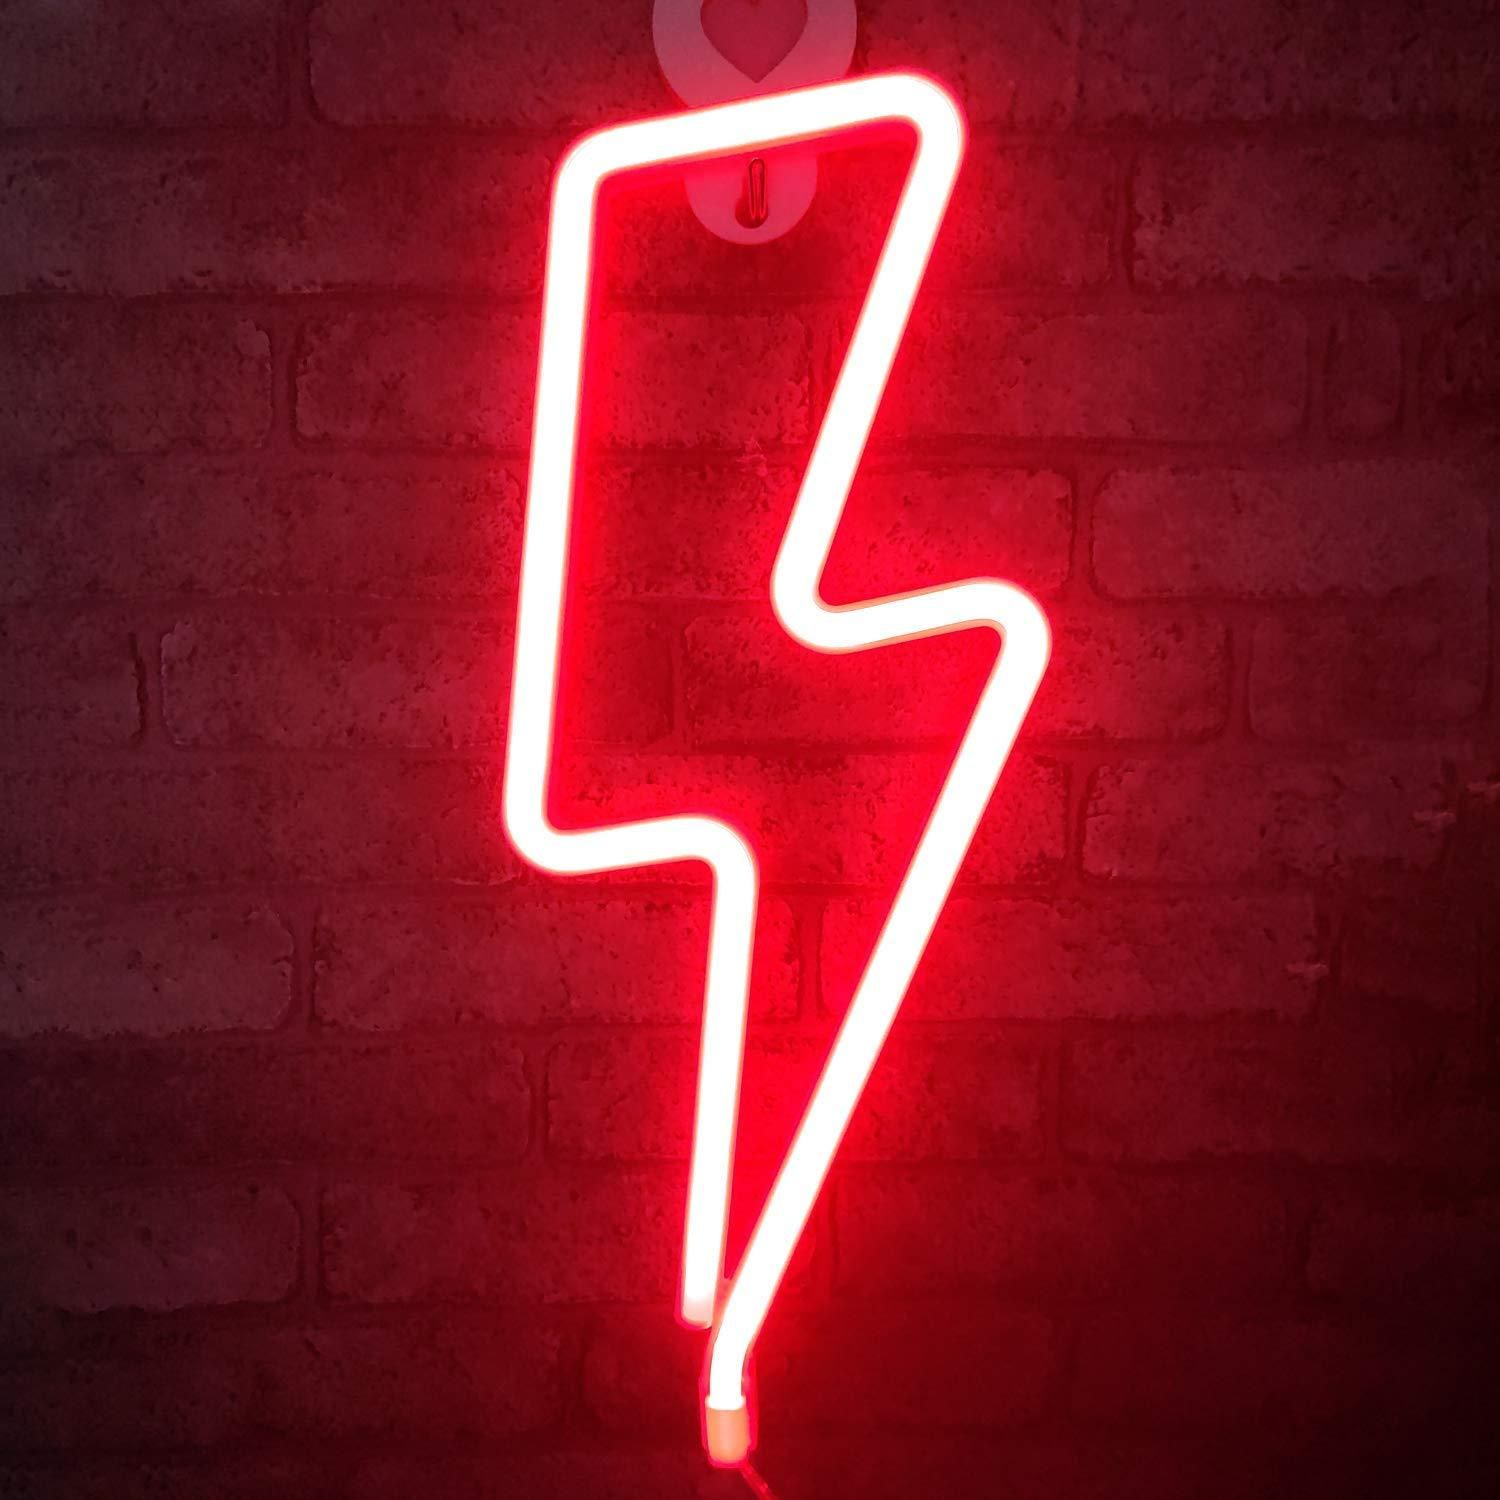 Red Neon Lightning Bolt In 2021 Red Aesthetic Dark Red Wallpaper Red And Black Wallpaper